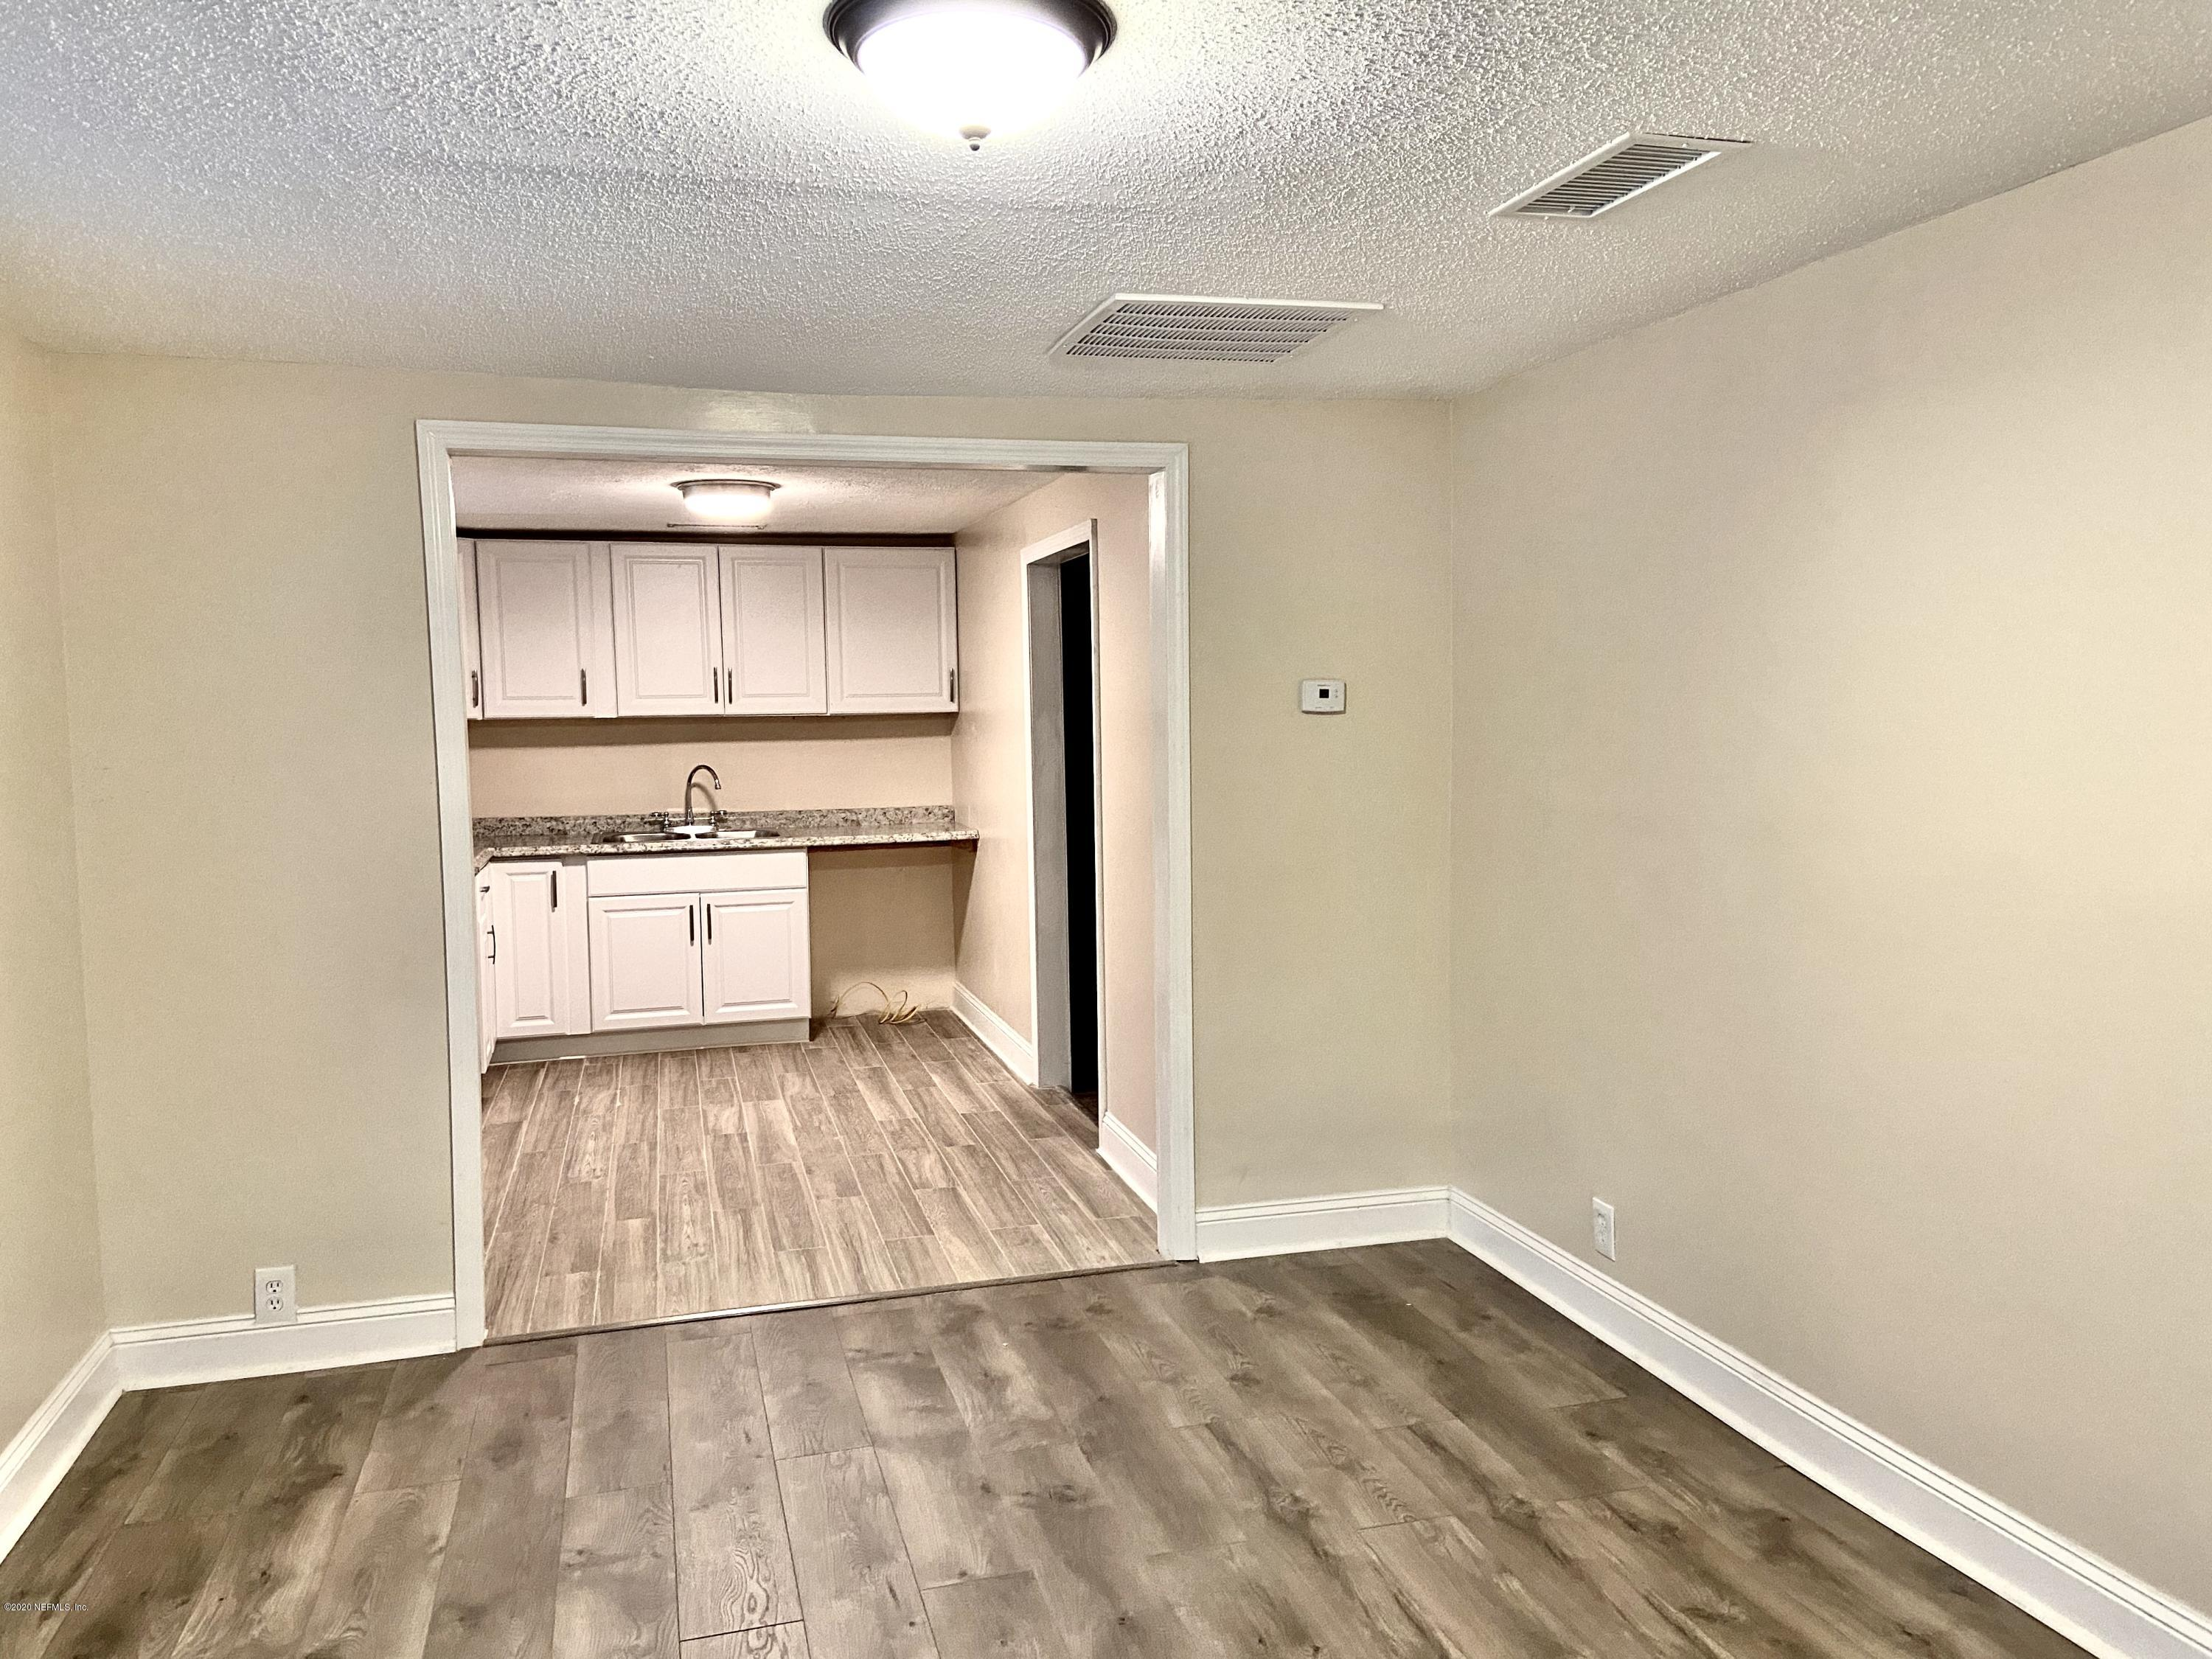 2339 BROOKLYN, JACKSONVILLE, FLORIDA 32209, 3 Bedrooms Bedrooms, ,2 BathroomsBathrooms,Investment / MultiFamily,For sale,BROOKLYN,1058715